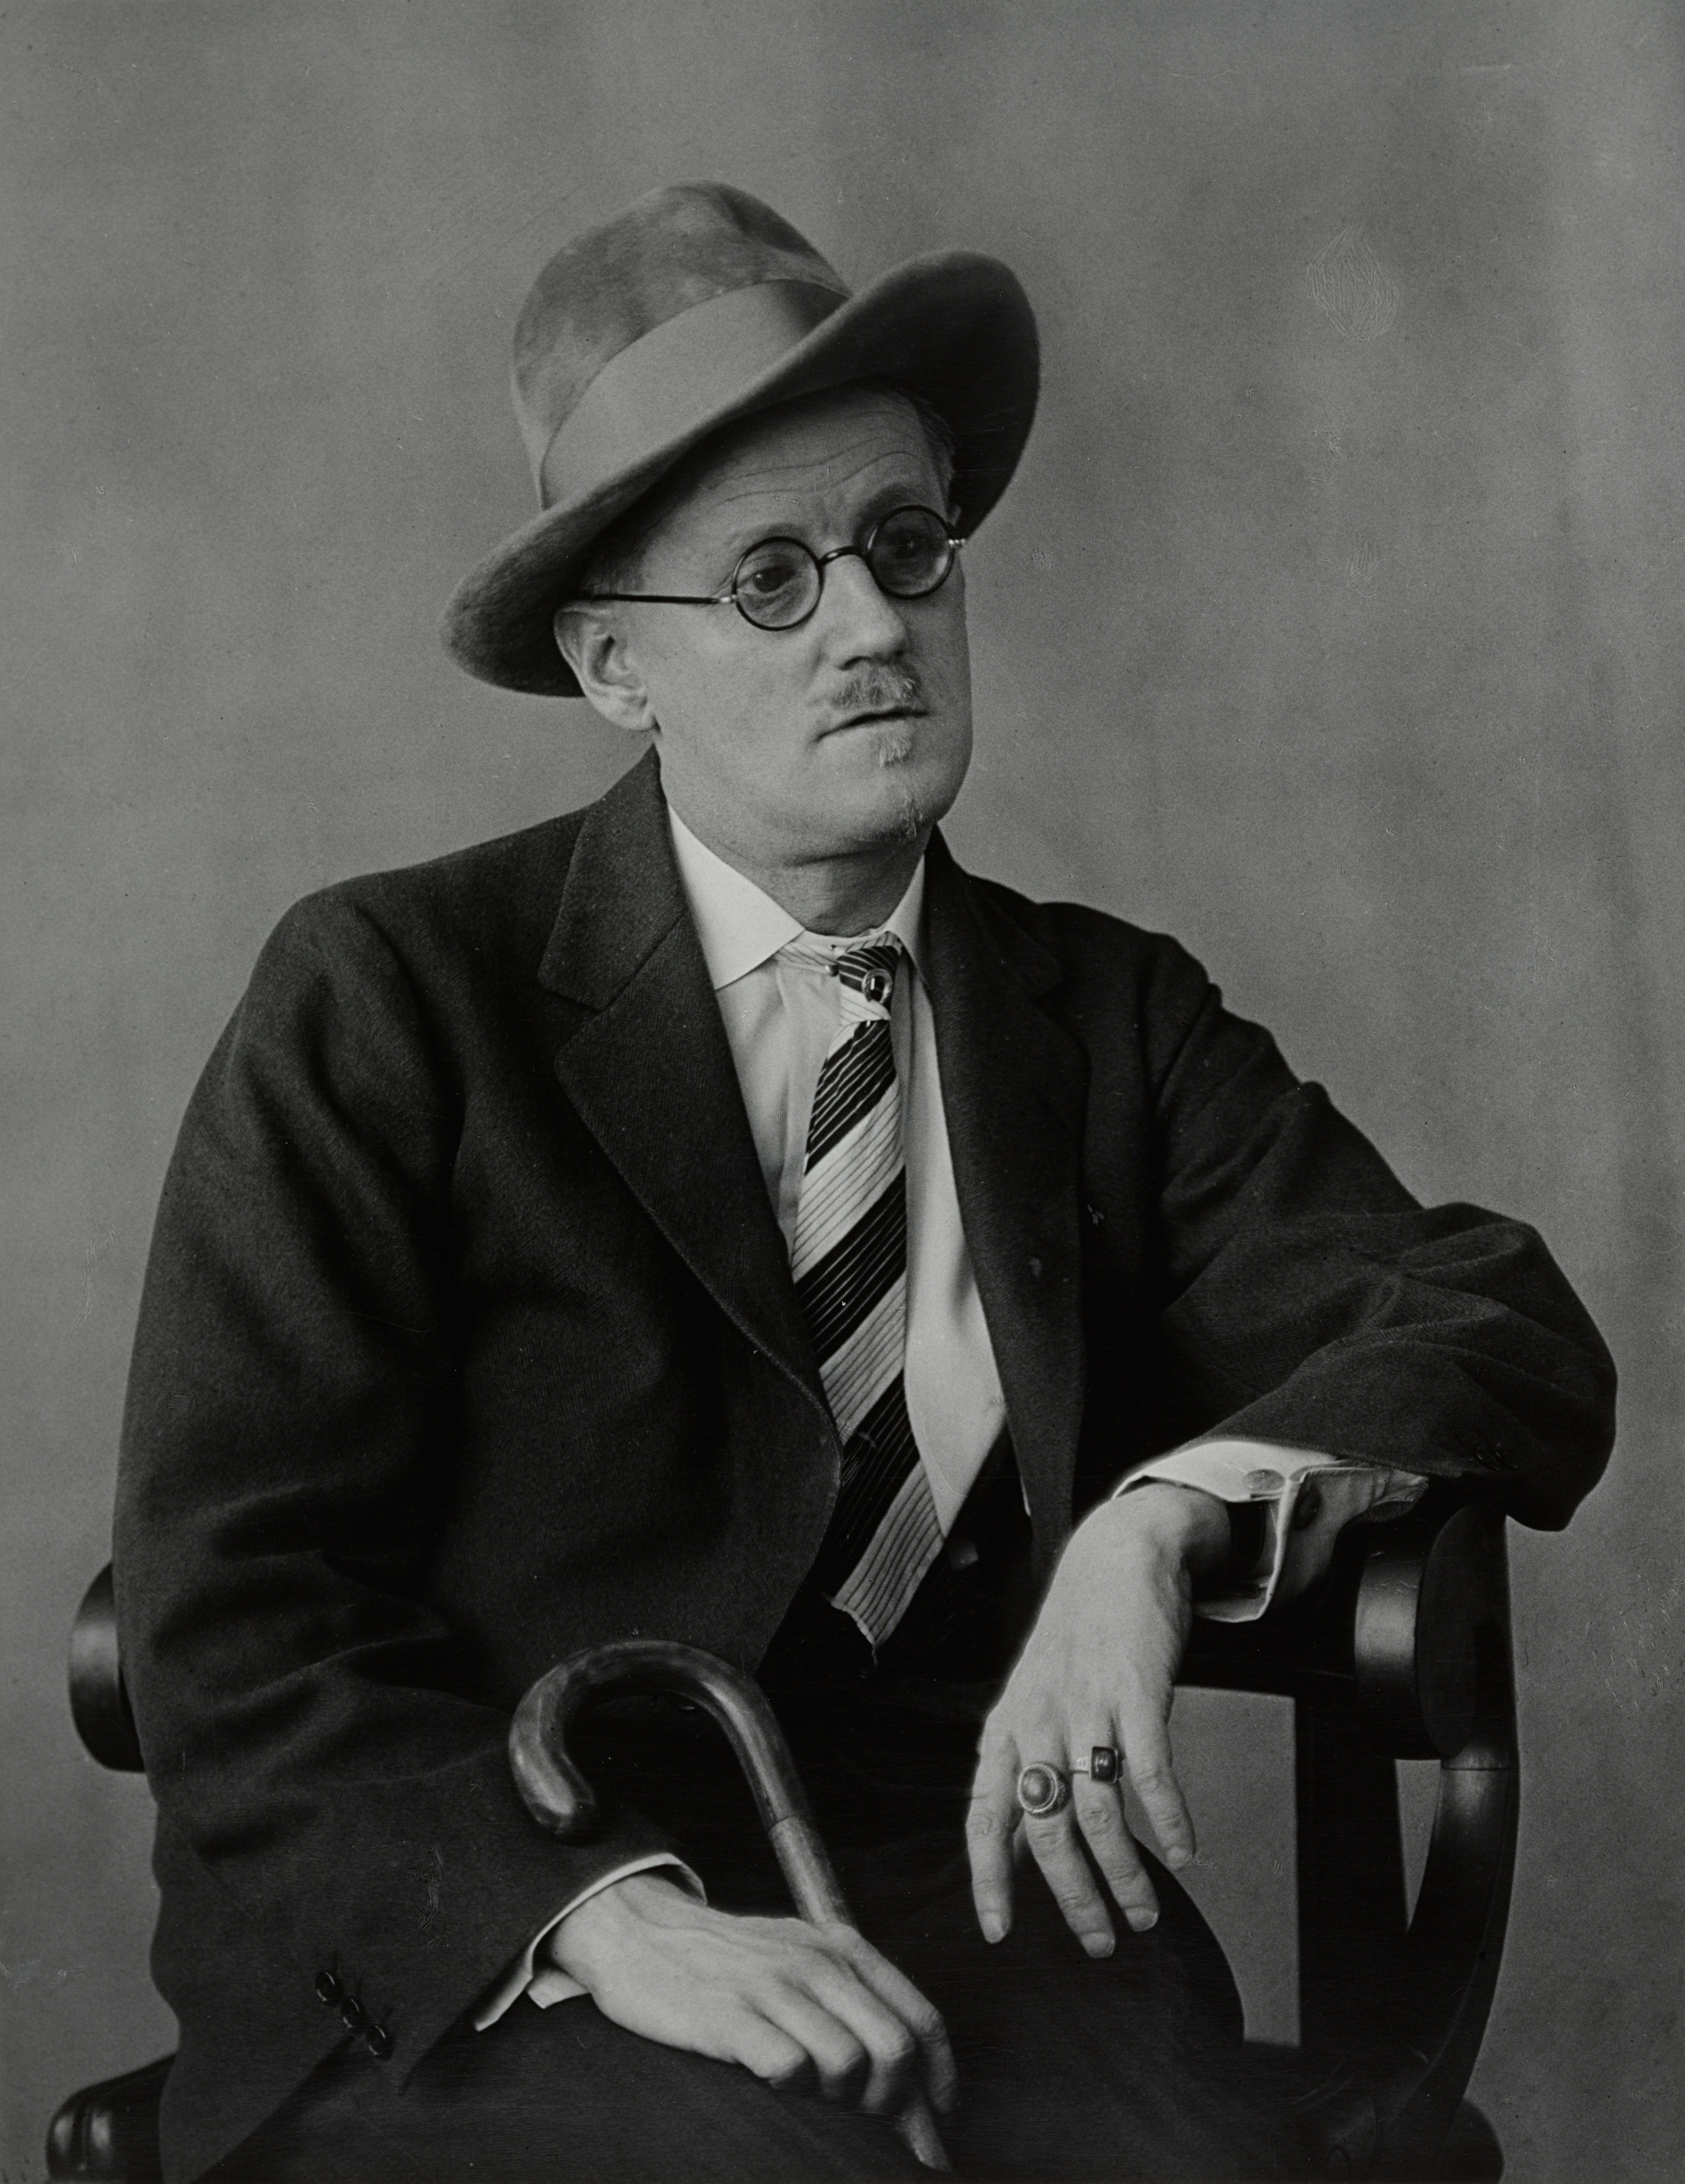 james joyce object photo  related images berenice abbott james joyce